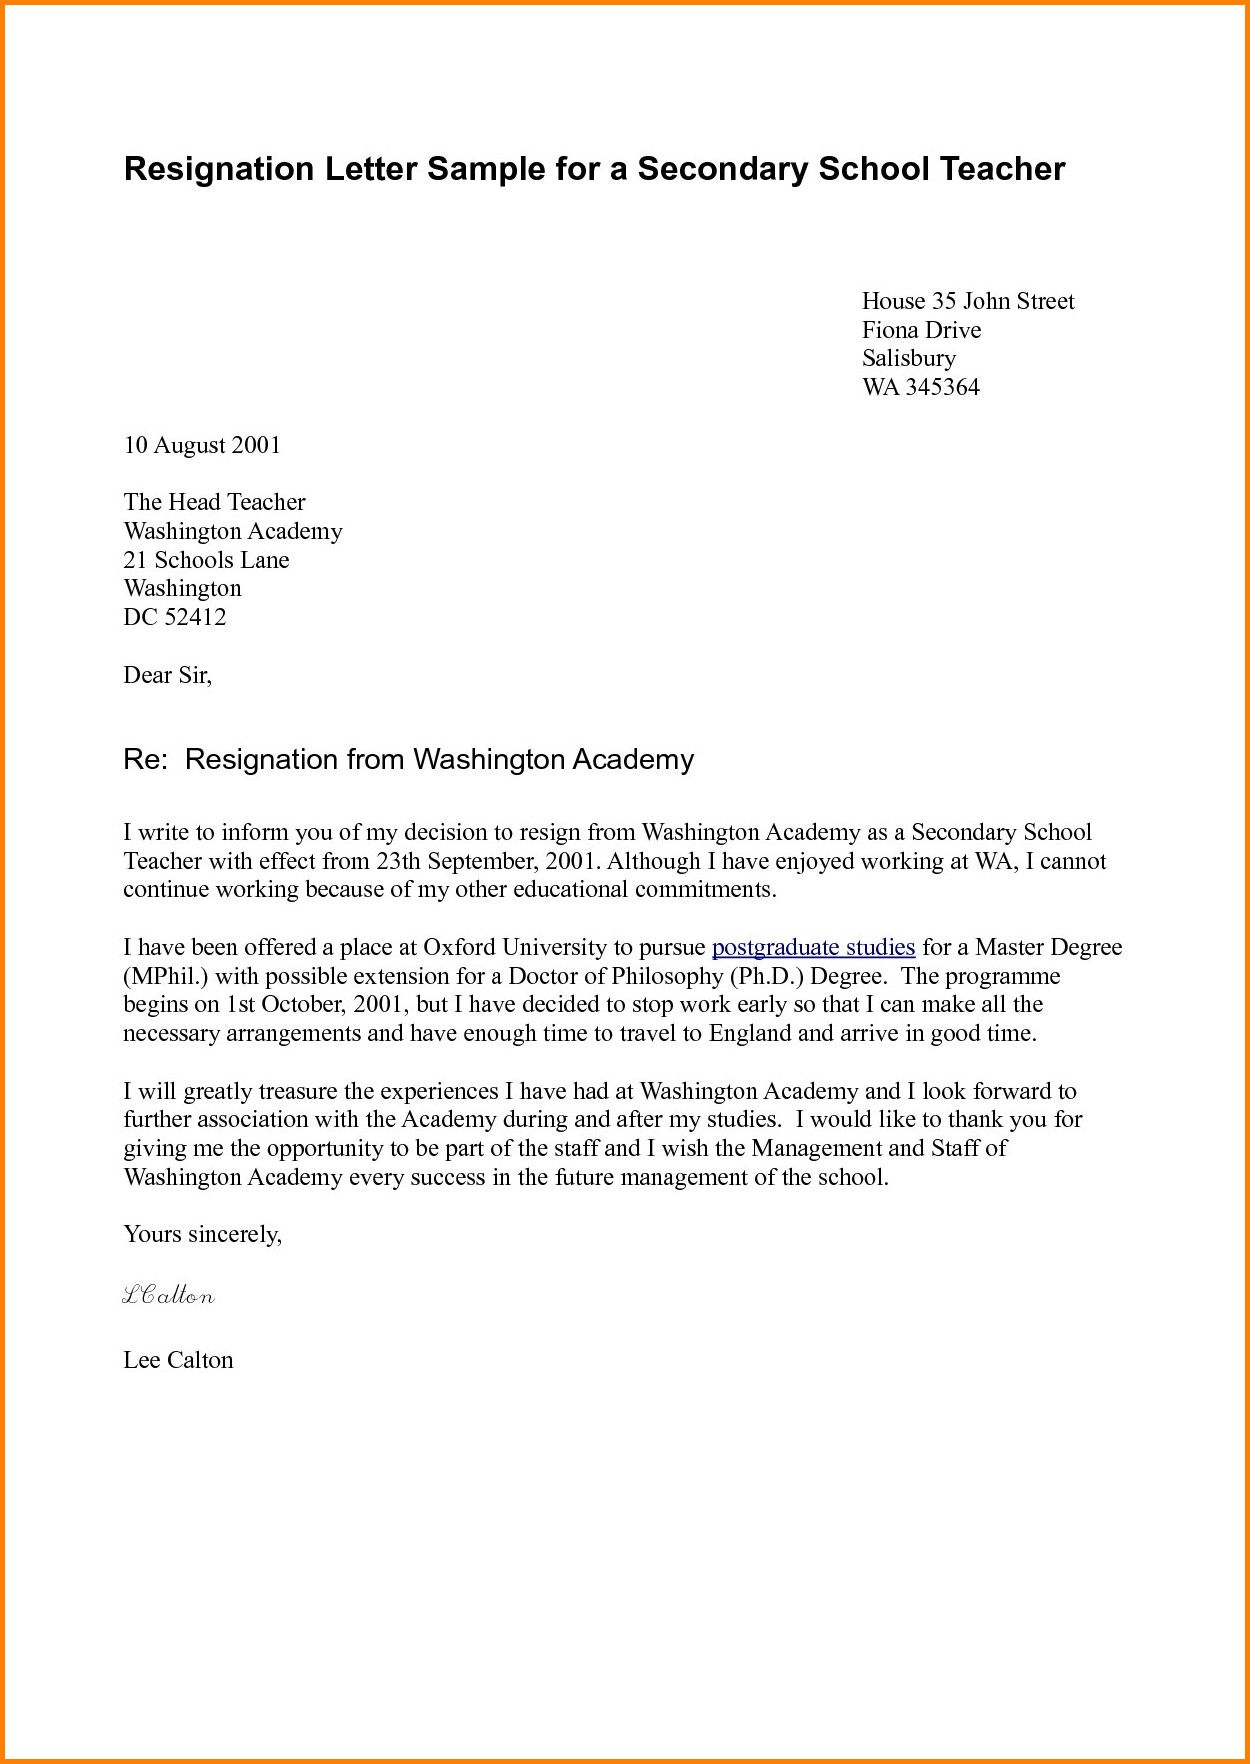 Copy Of Resignation Letter 6 Resignation Letter To Pursue Other Opportunities Resignation Letter Resignation Letter Sample Resignation